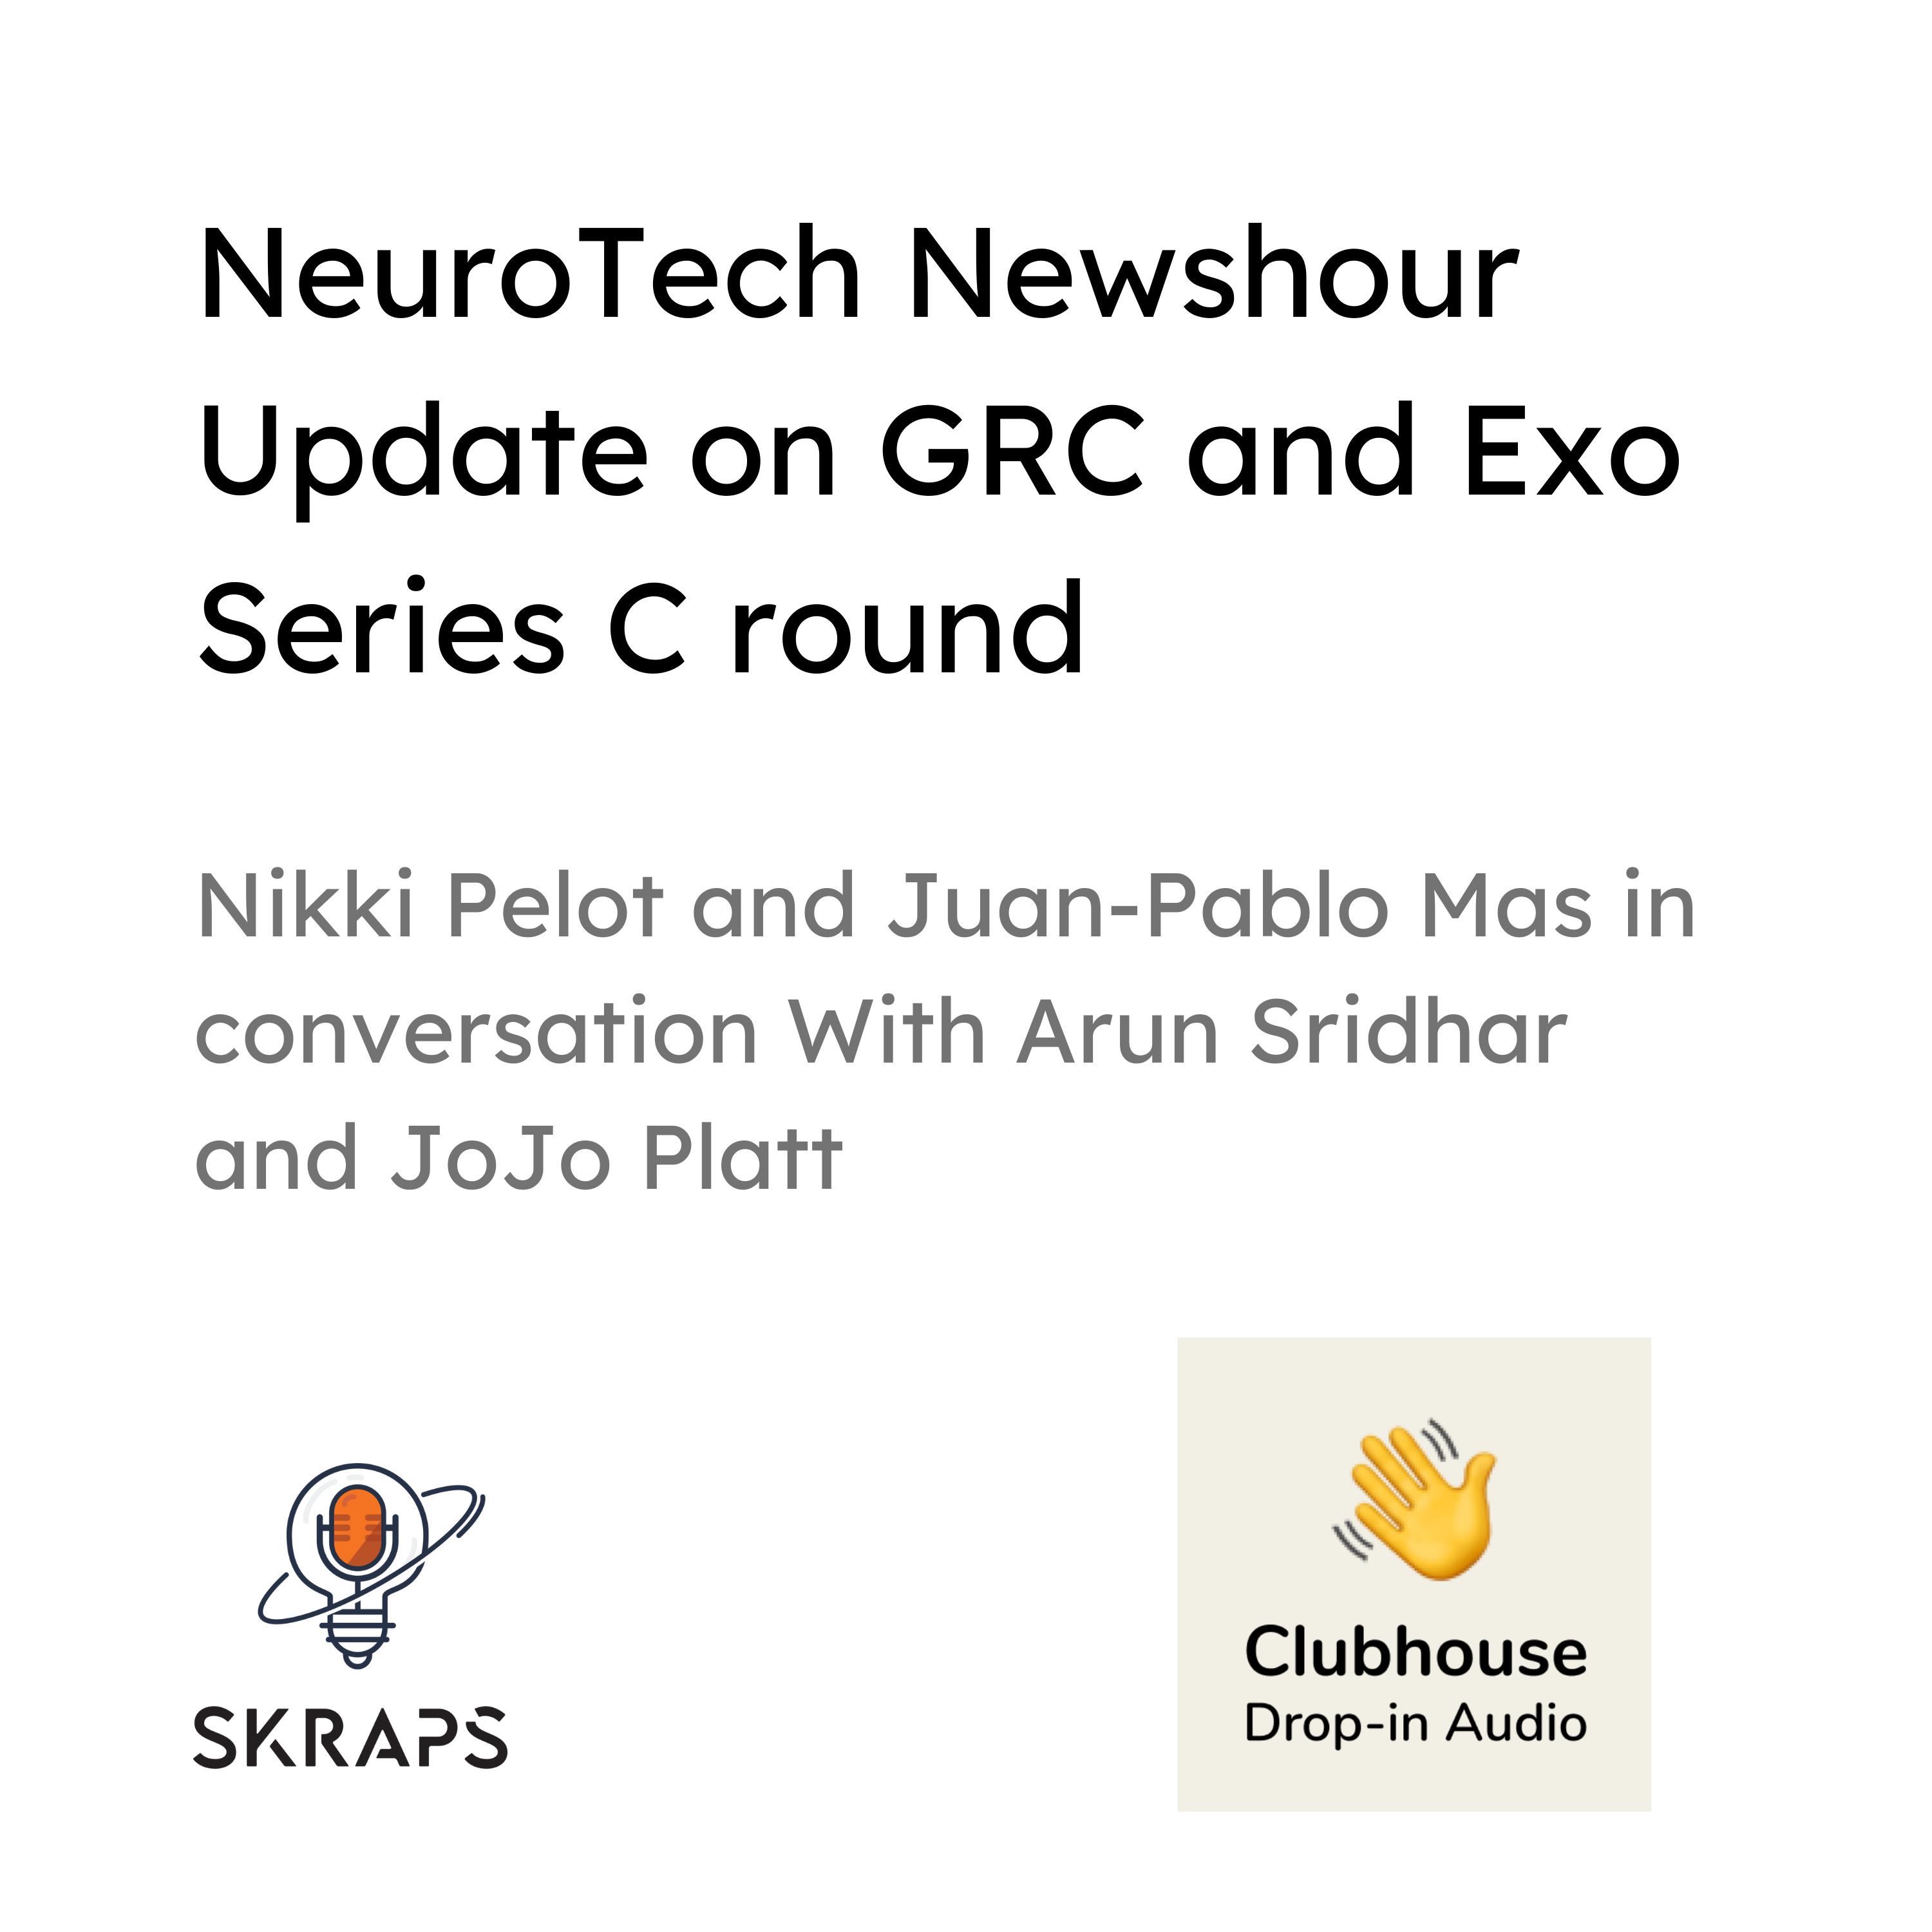 Recording: NeuroTech NewsHour session on Clubhouse